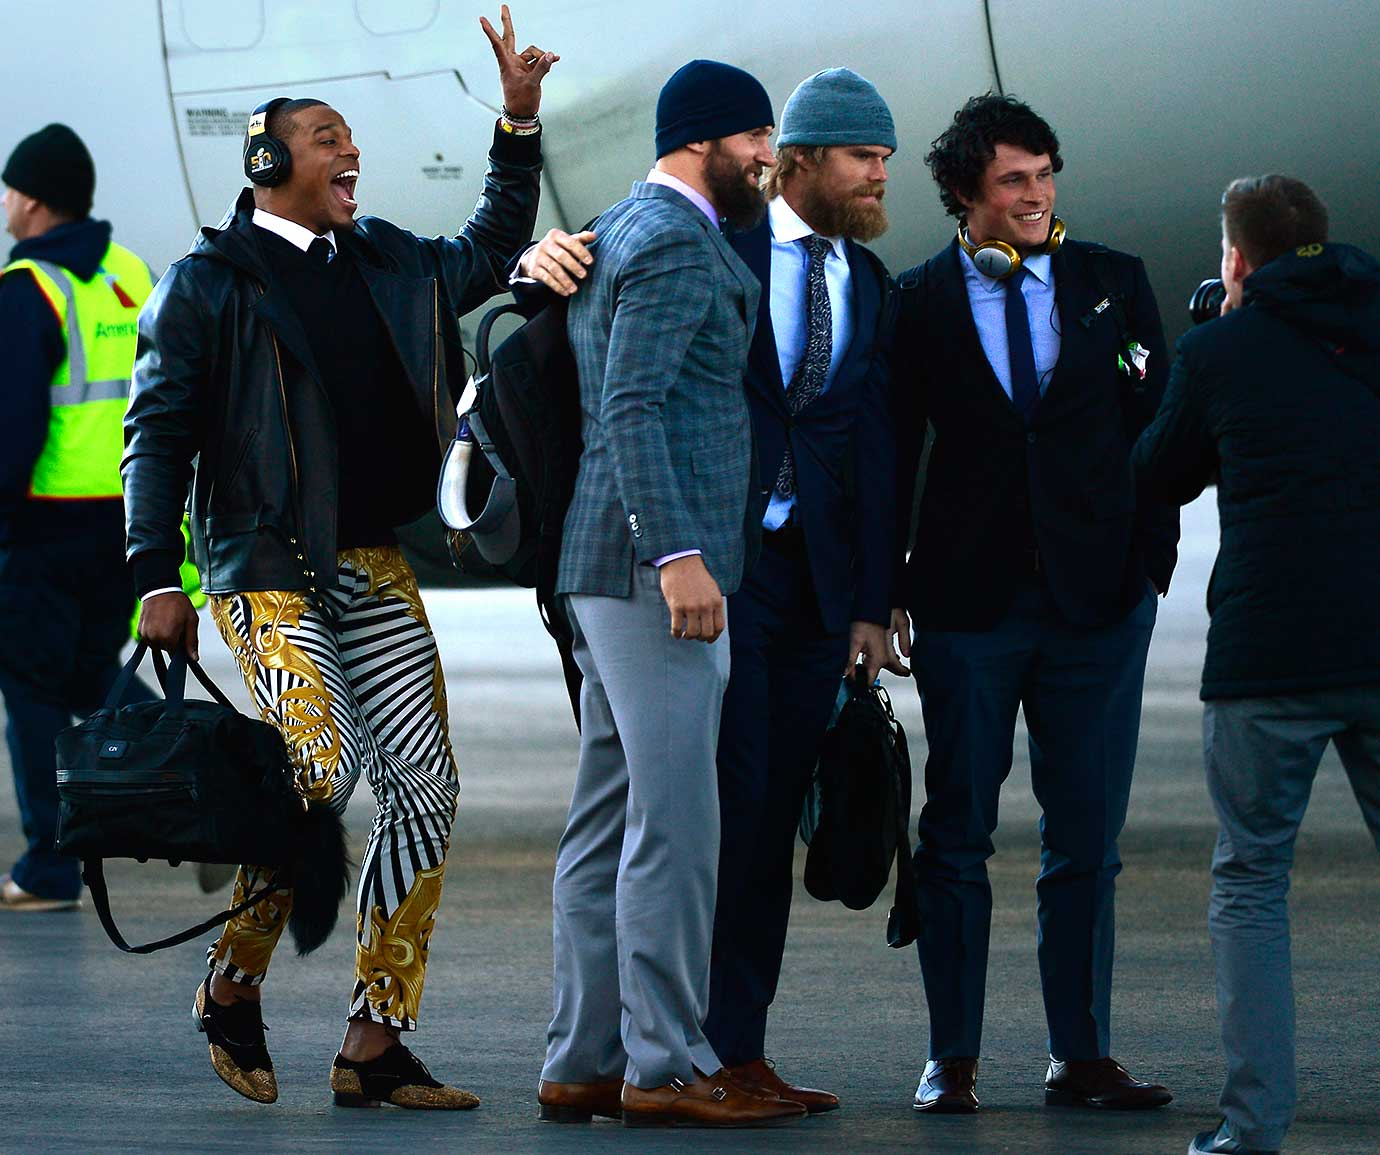 Carolina Panthers quarterback Cam Newton photo bombs his teammates as they arrive in California for Super Bowl 50.